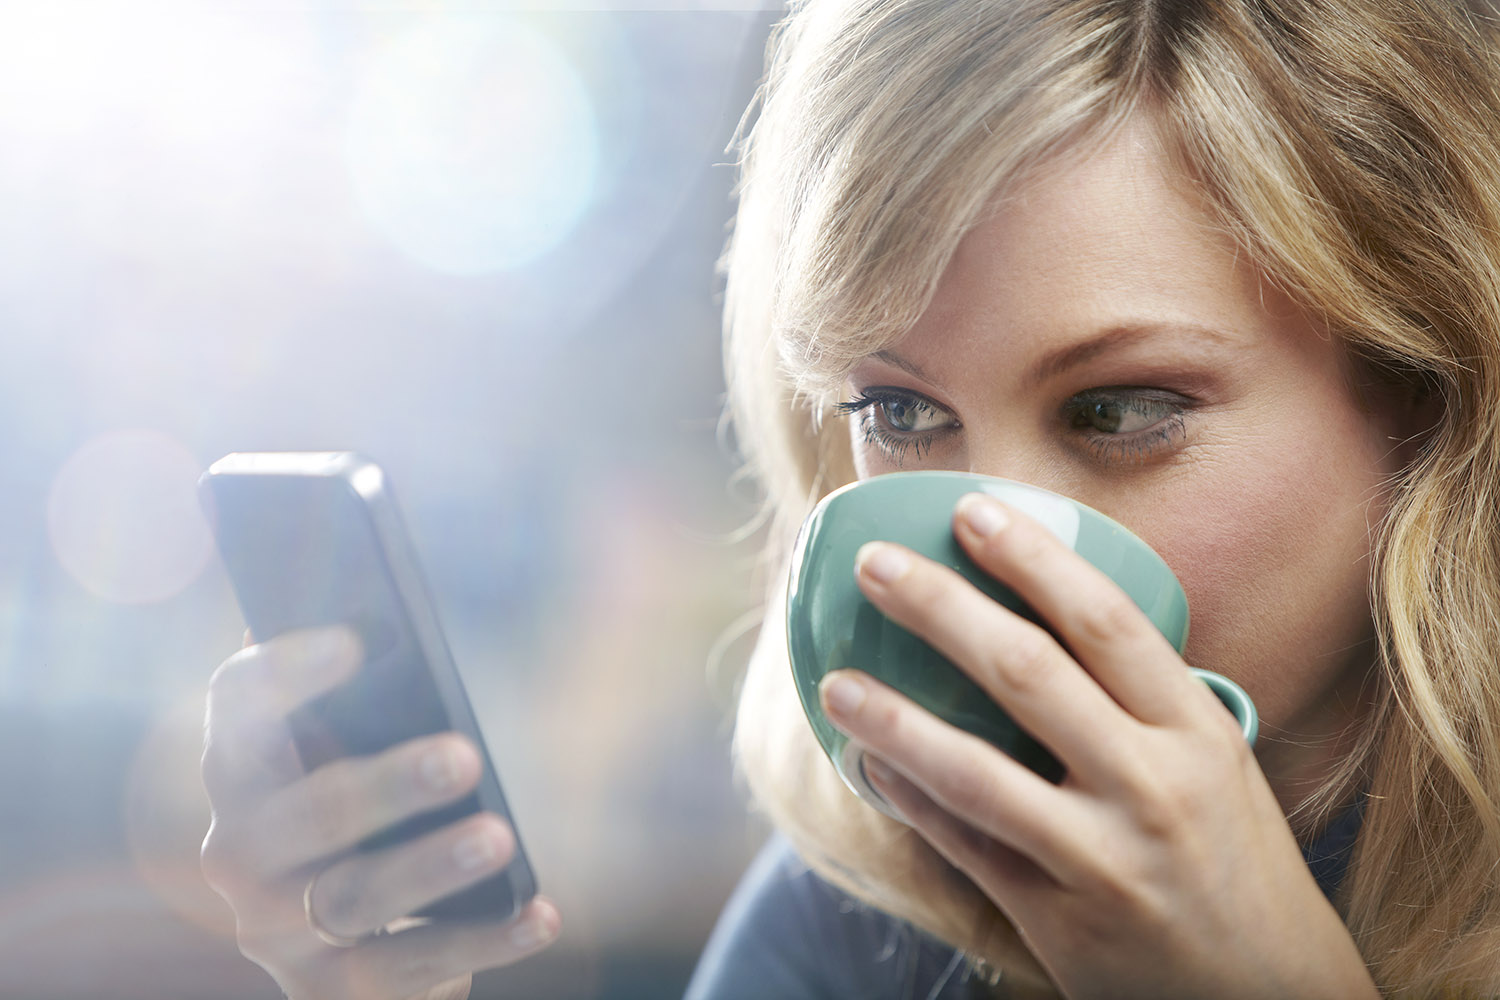 Woman using mobile phone to view website